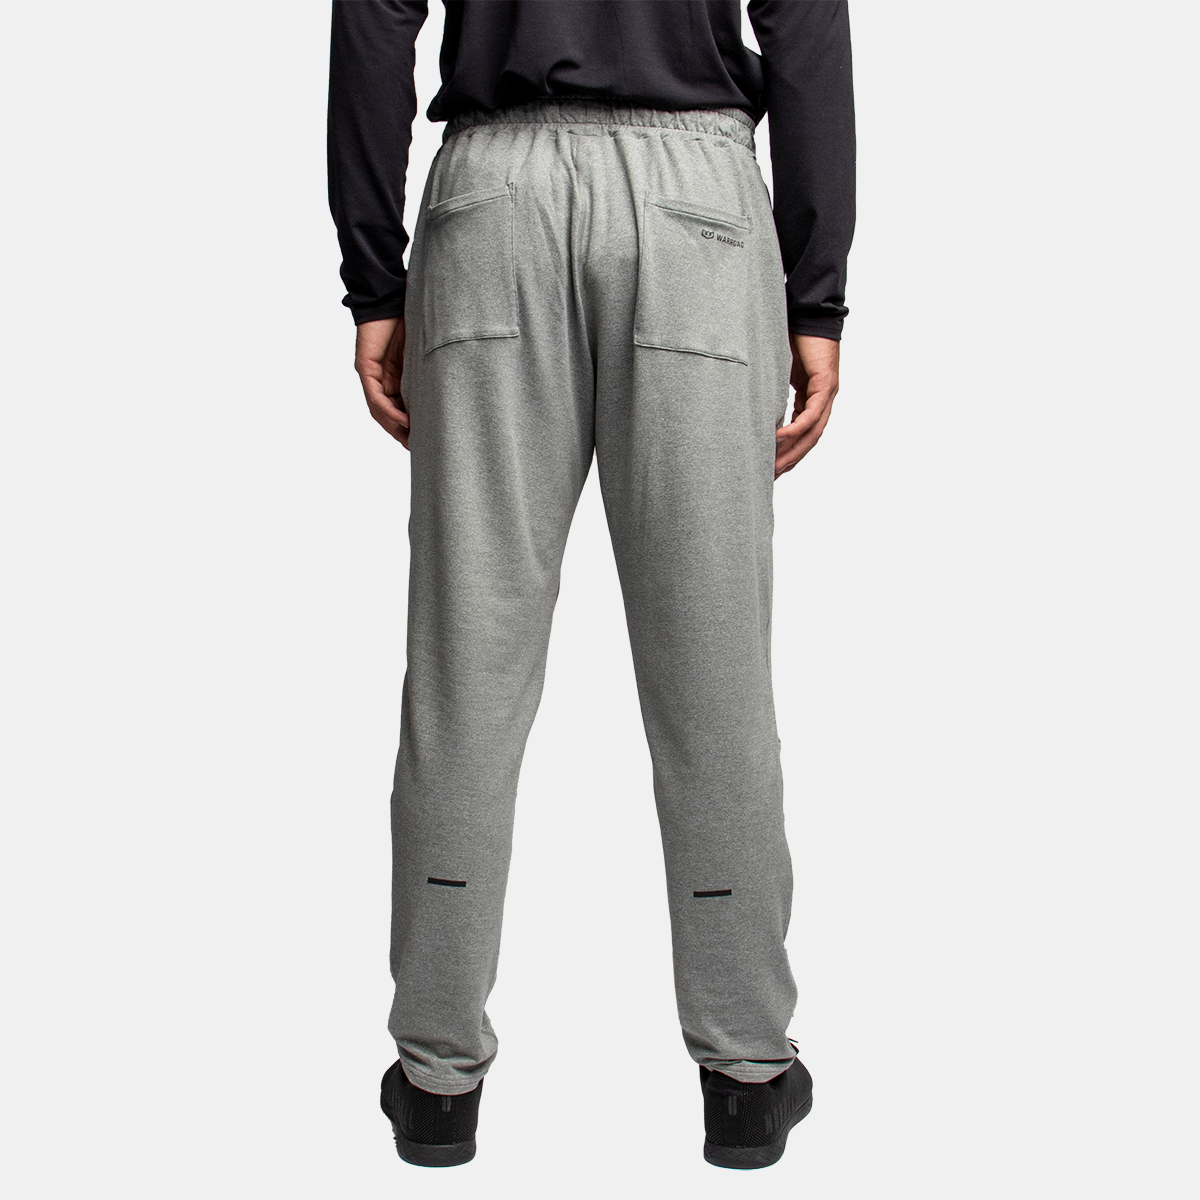 Training Pants - Championship Grey